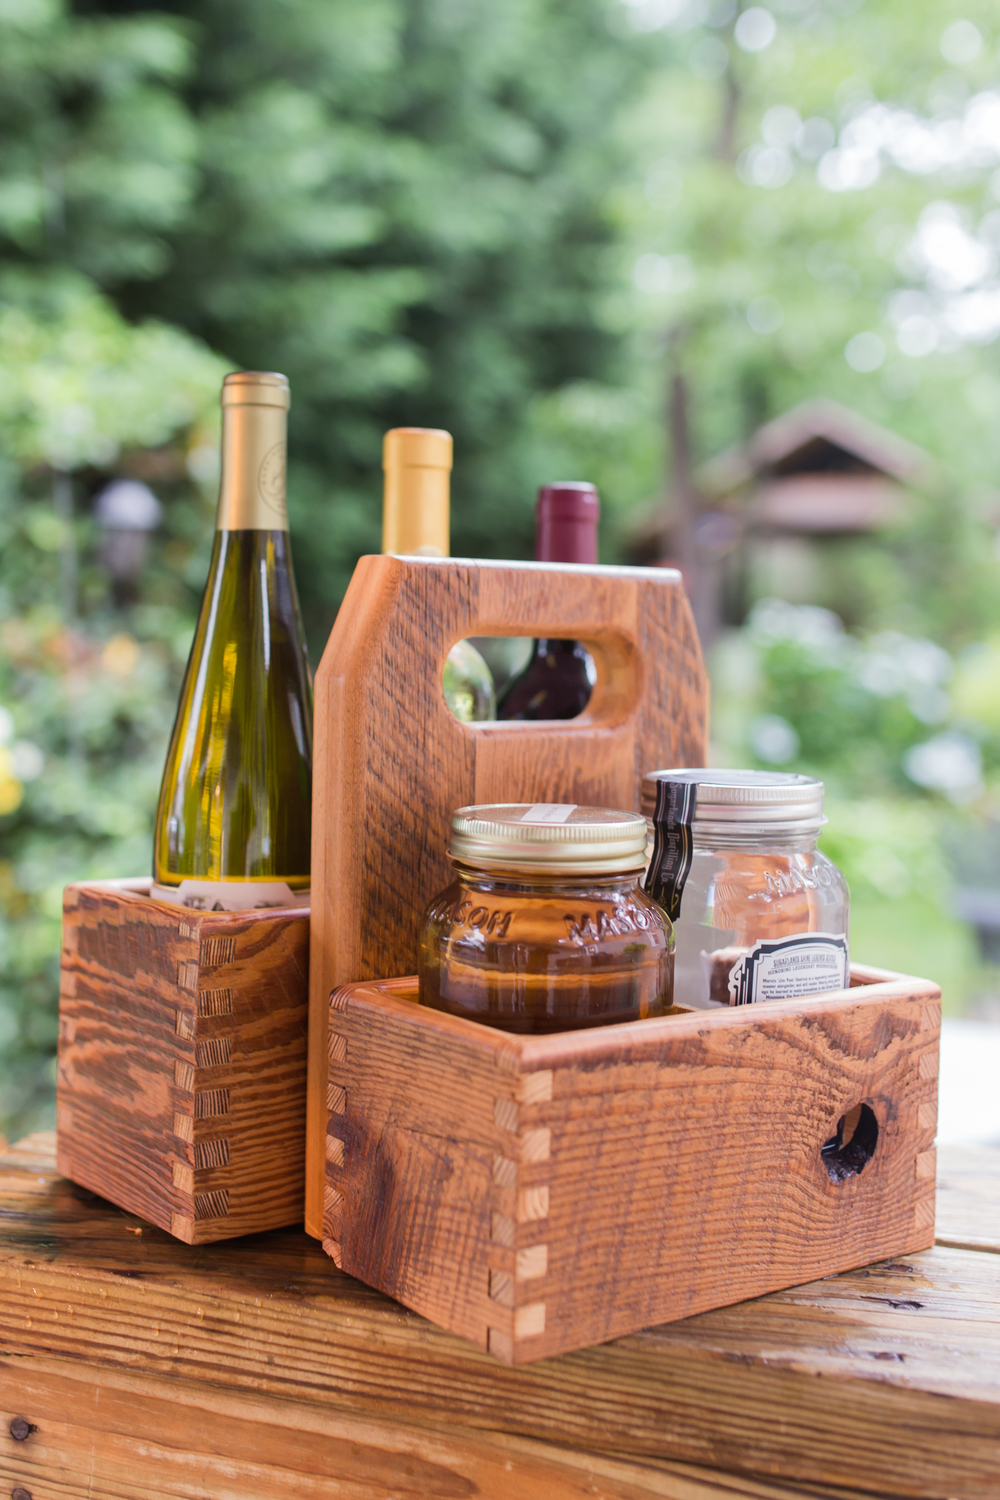 H&H mason jar wine bottle tote